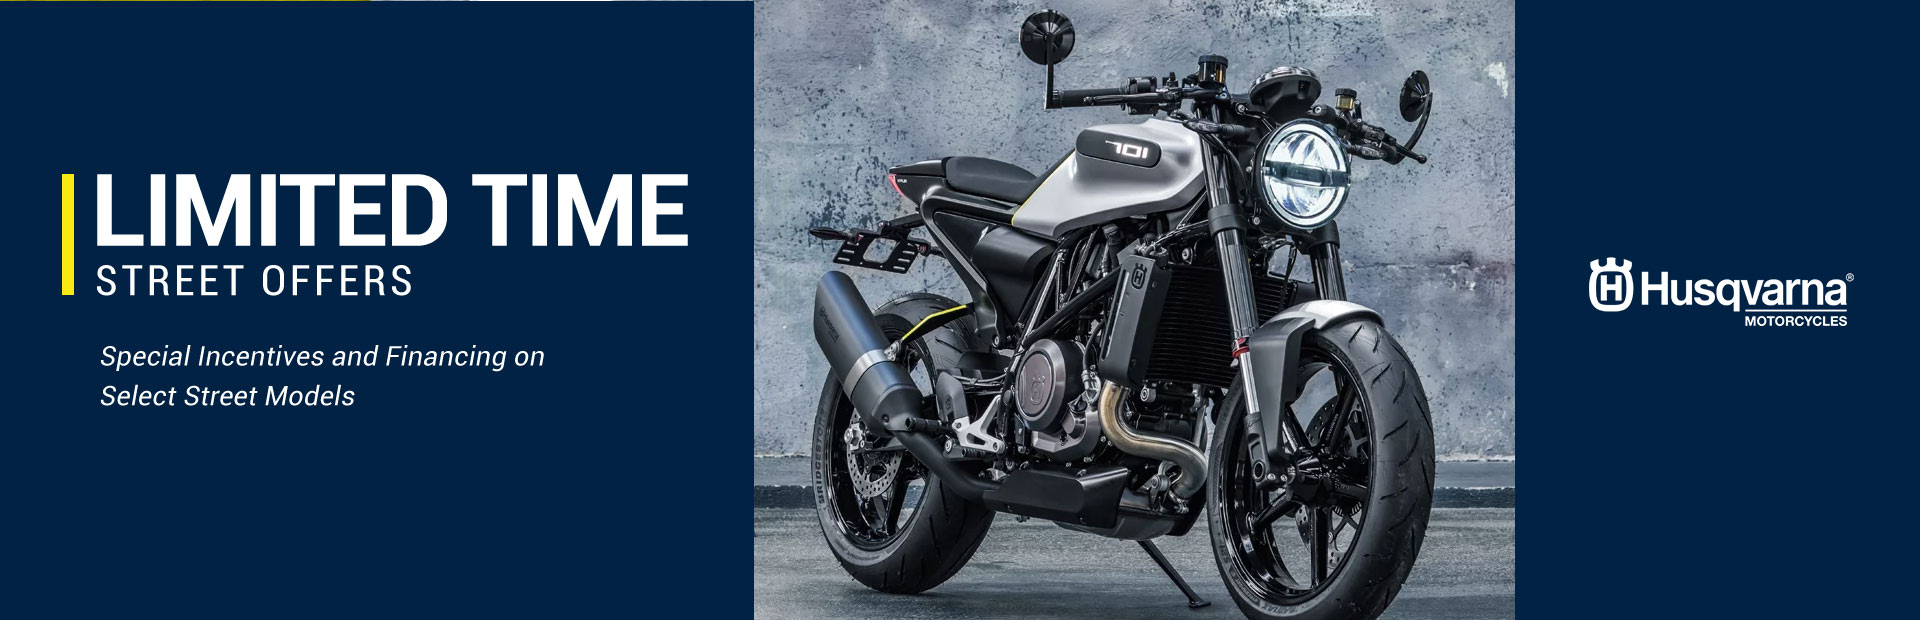 Husqvarna Motorcycles: Limited Time Street Offers